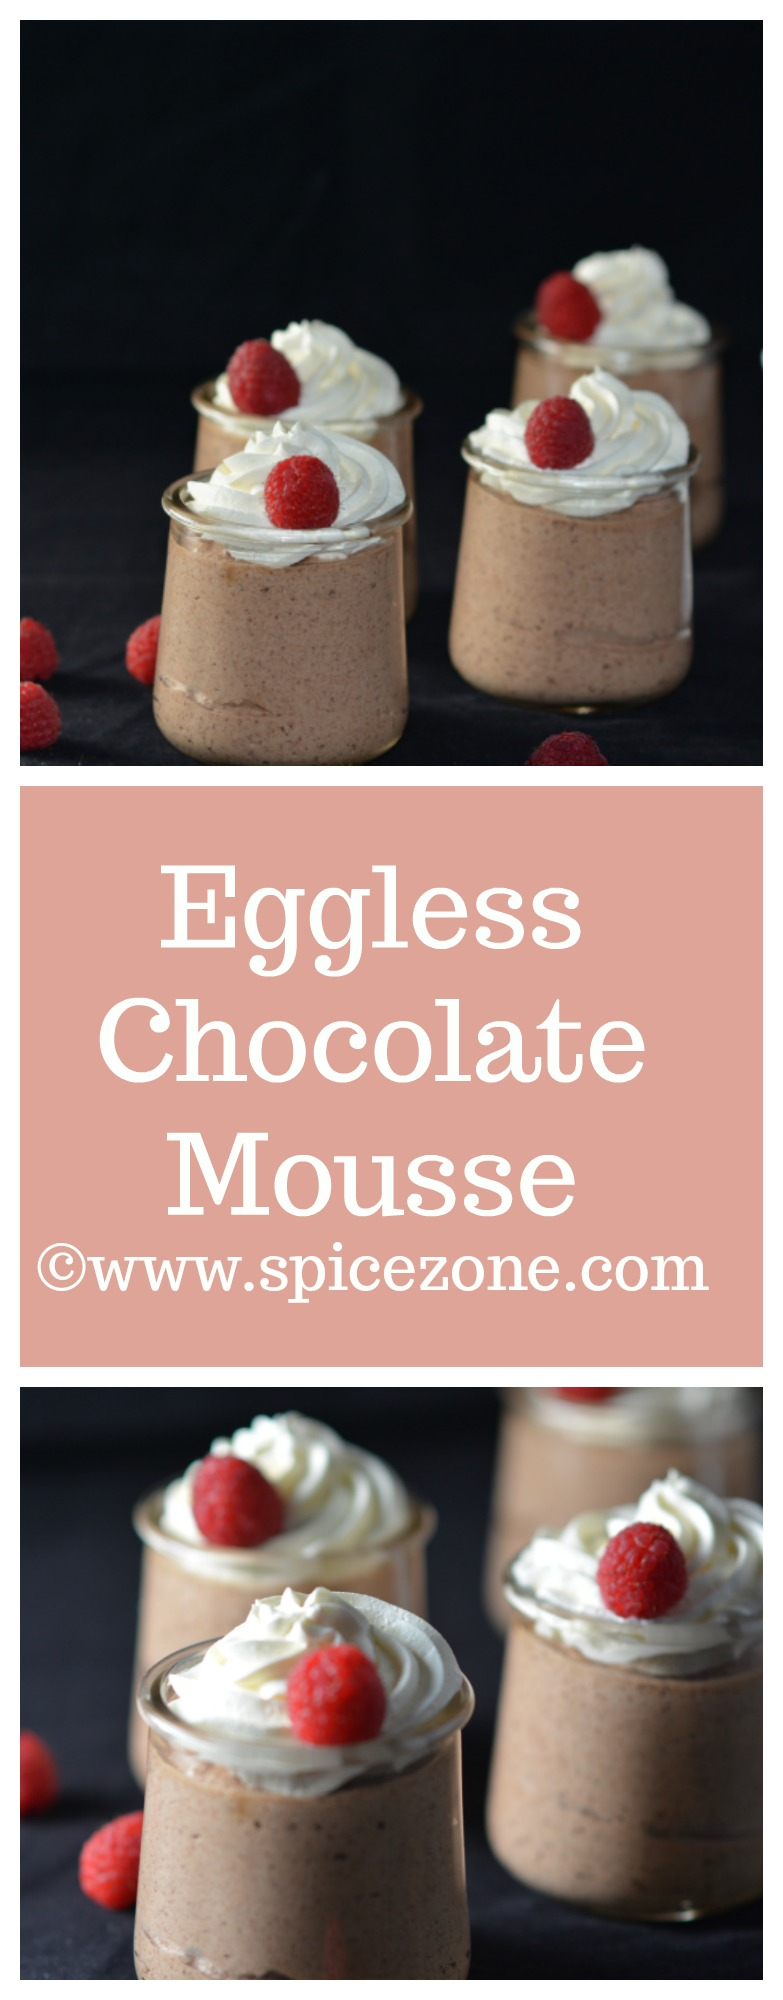 Eggless Chocolate Mousse | Easy dessert recipe - Spice Zone